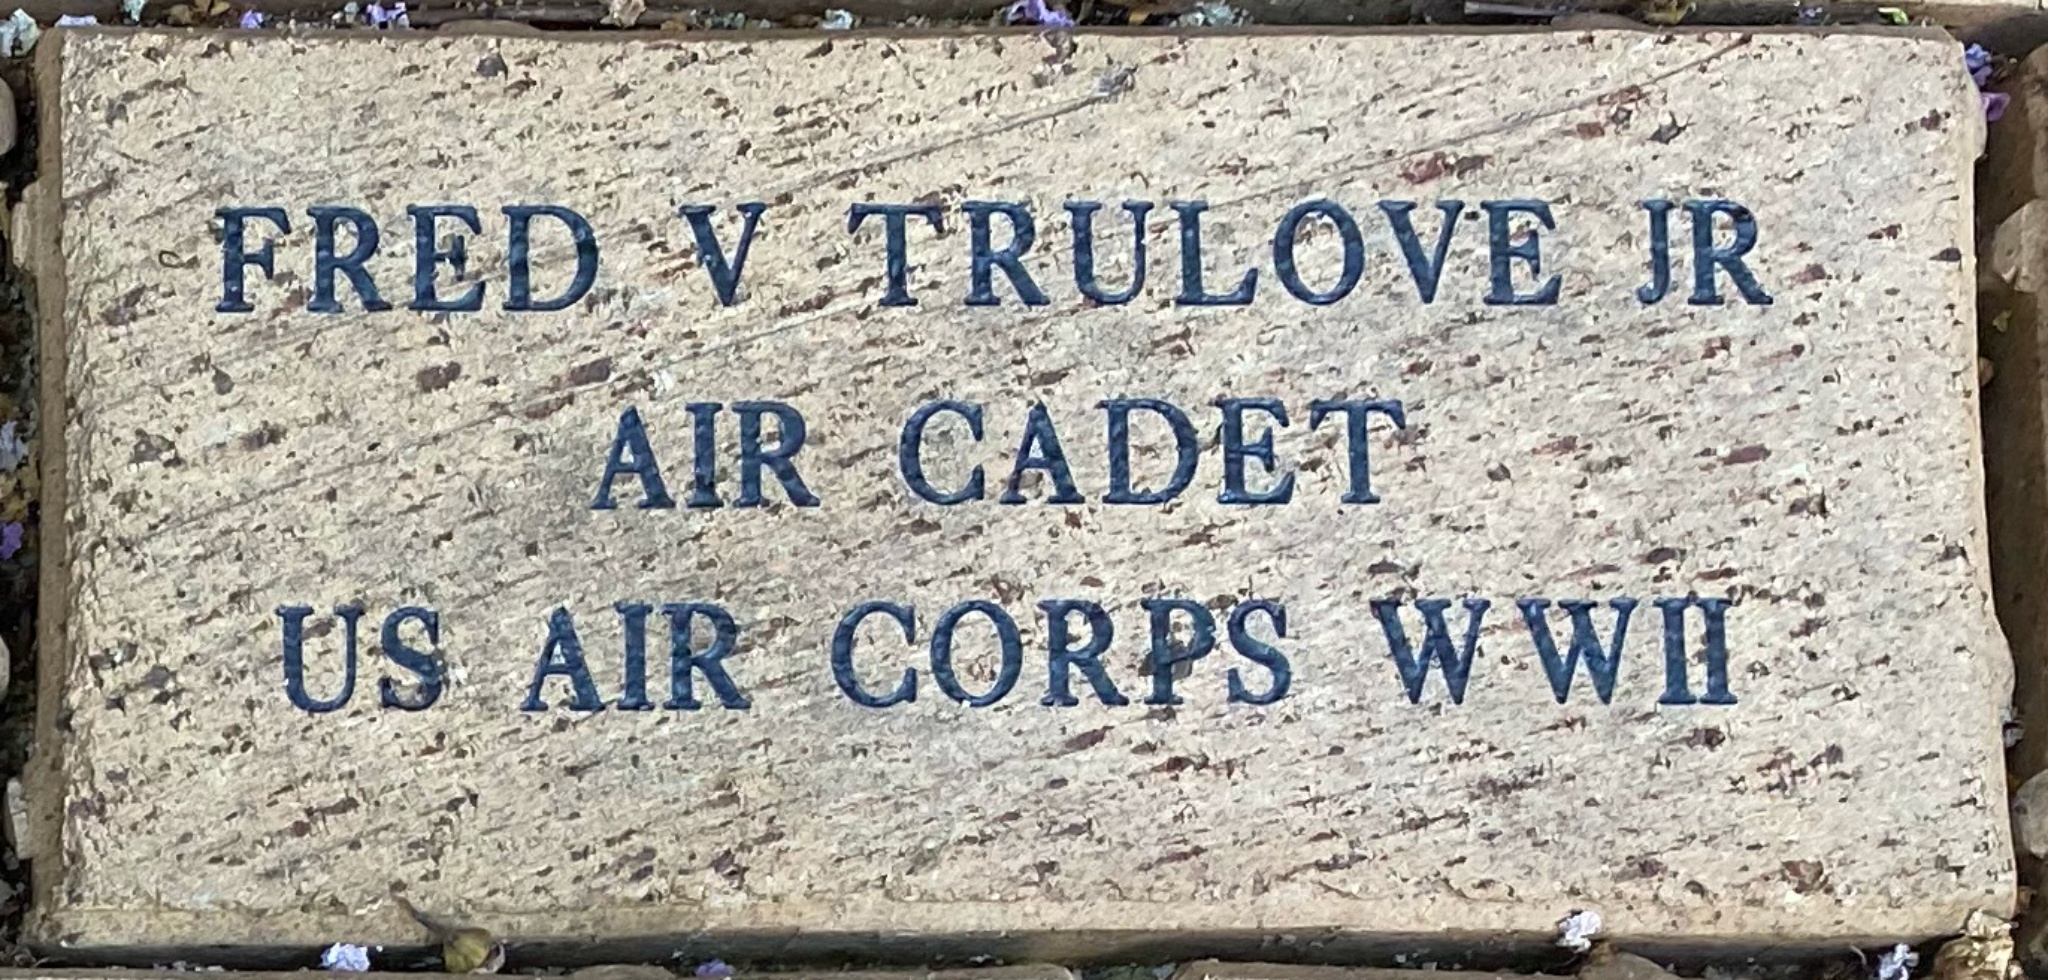 FRED V TRULOVE JR AIR CADET US AIR CORPS WWII